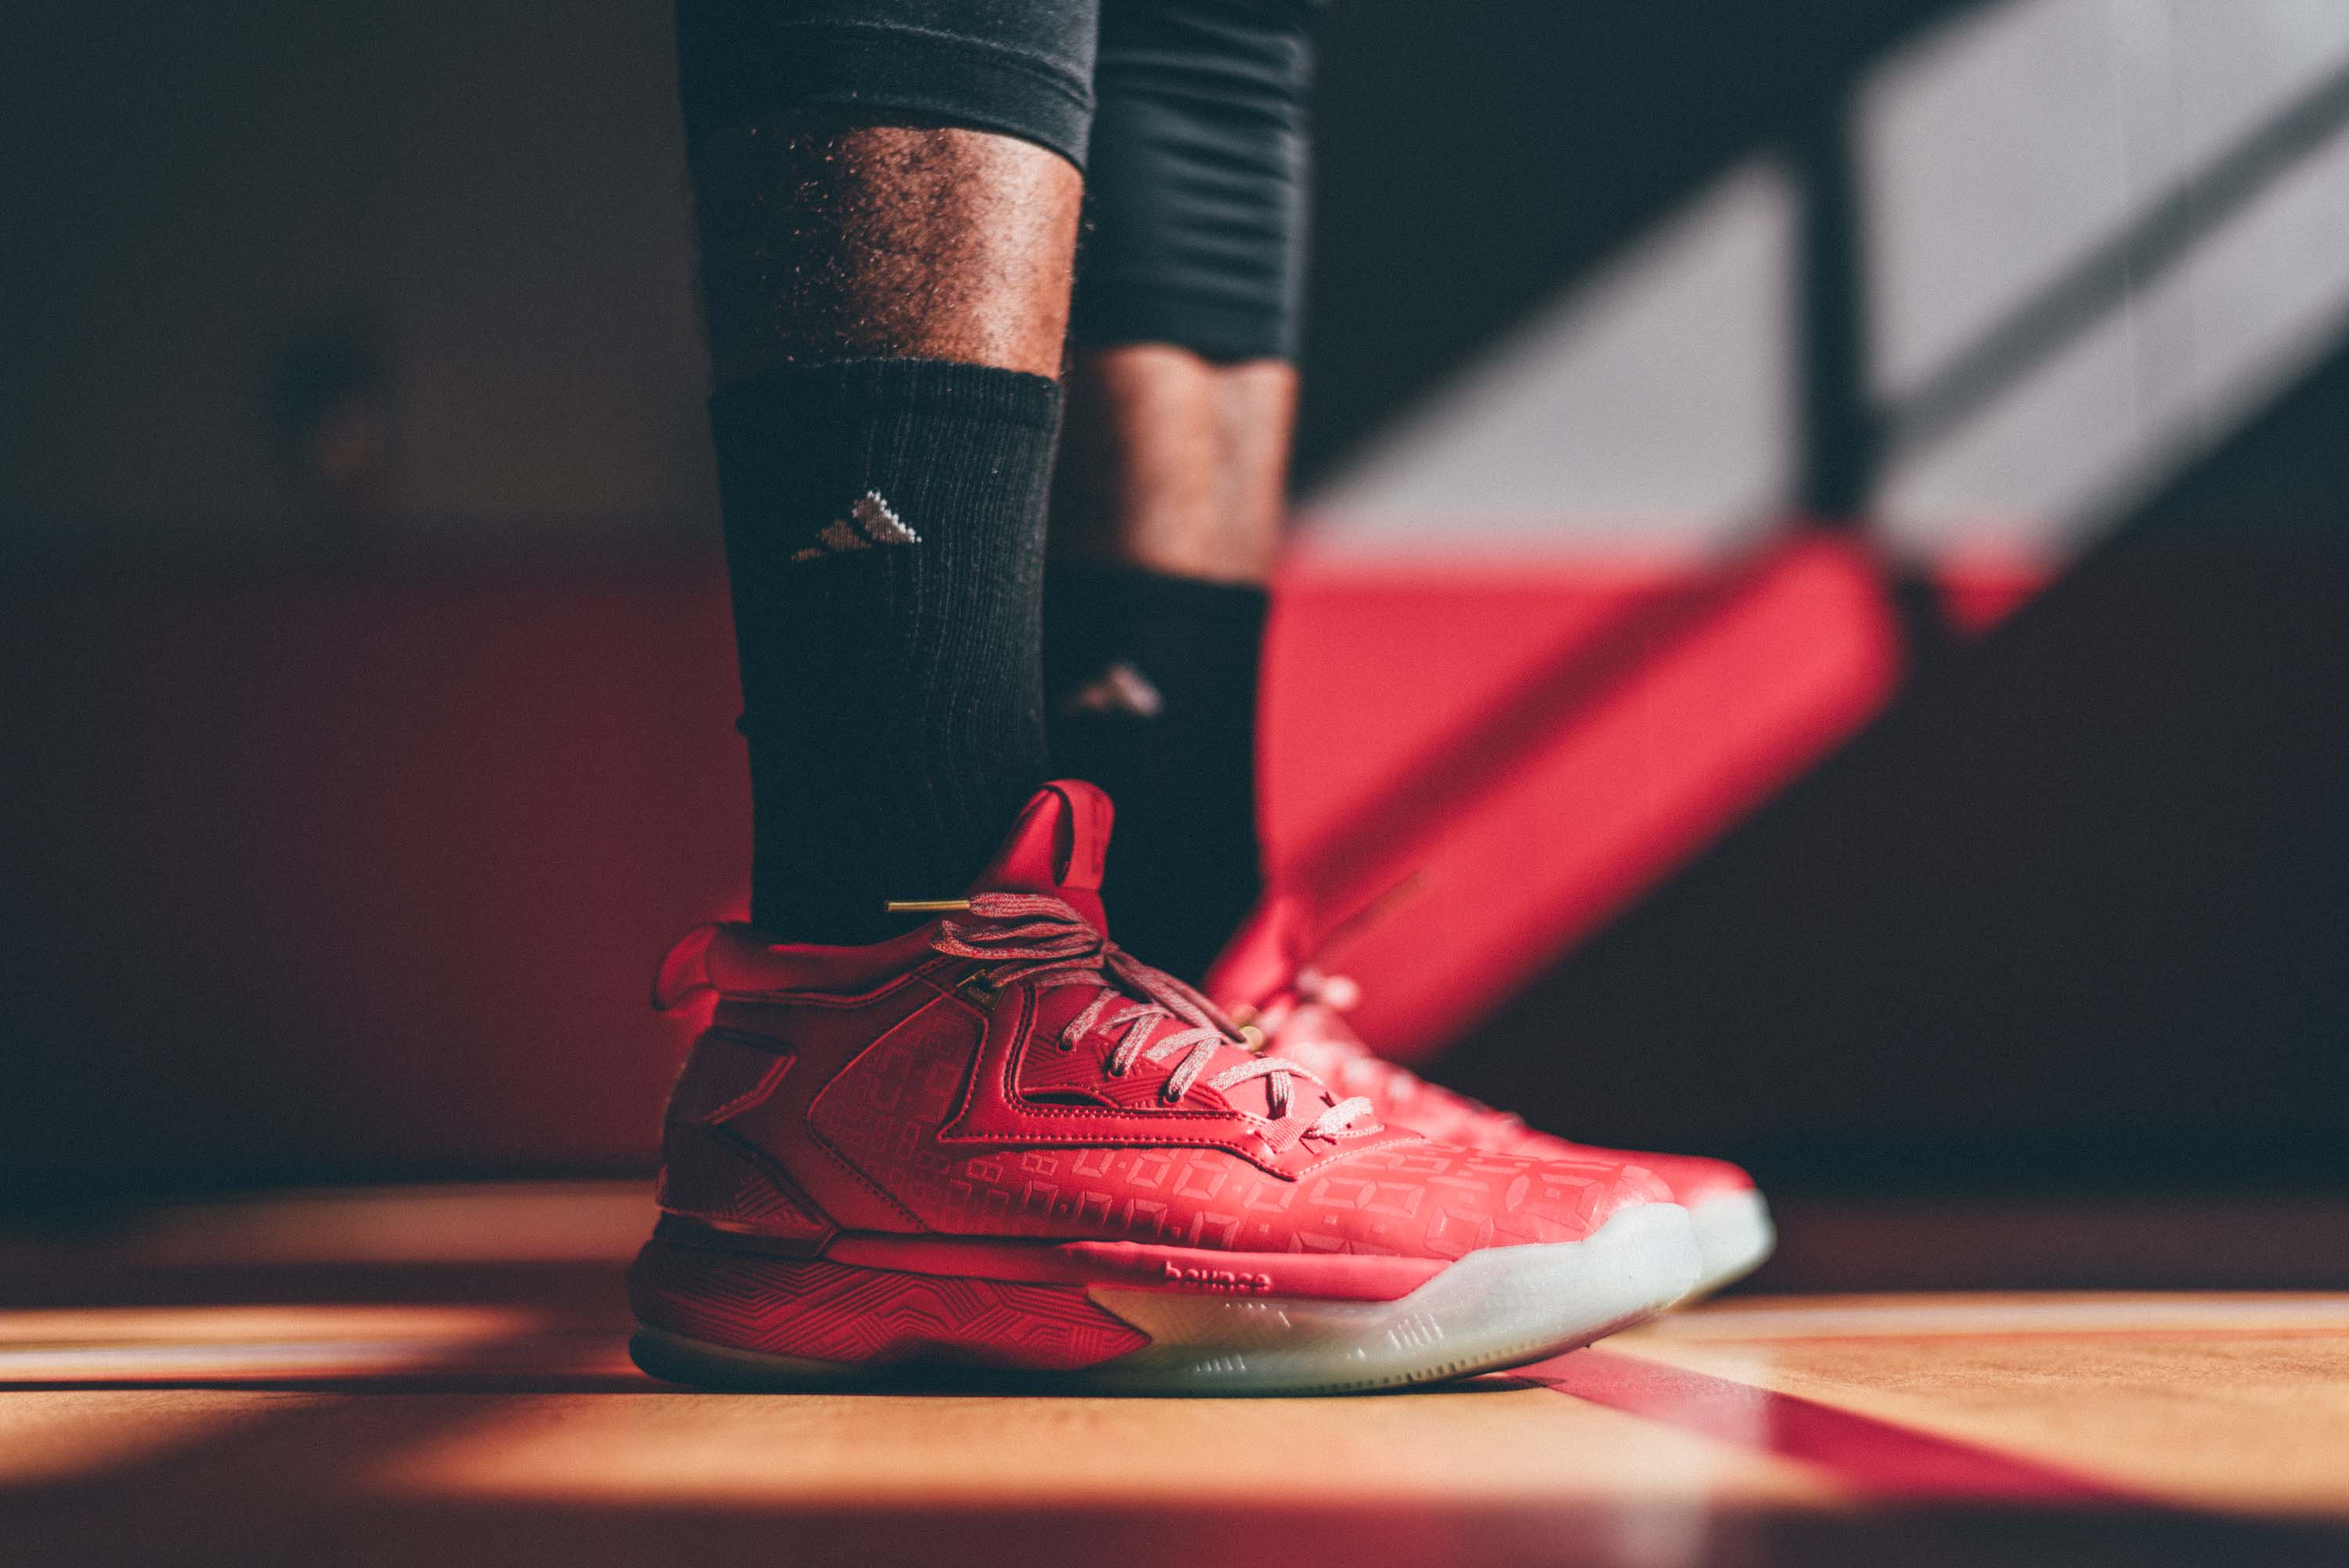 eaa4780988ba New D Lillard 2 Colorway Arrives For Start of Season - Slam Dunk Central